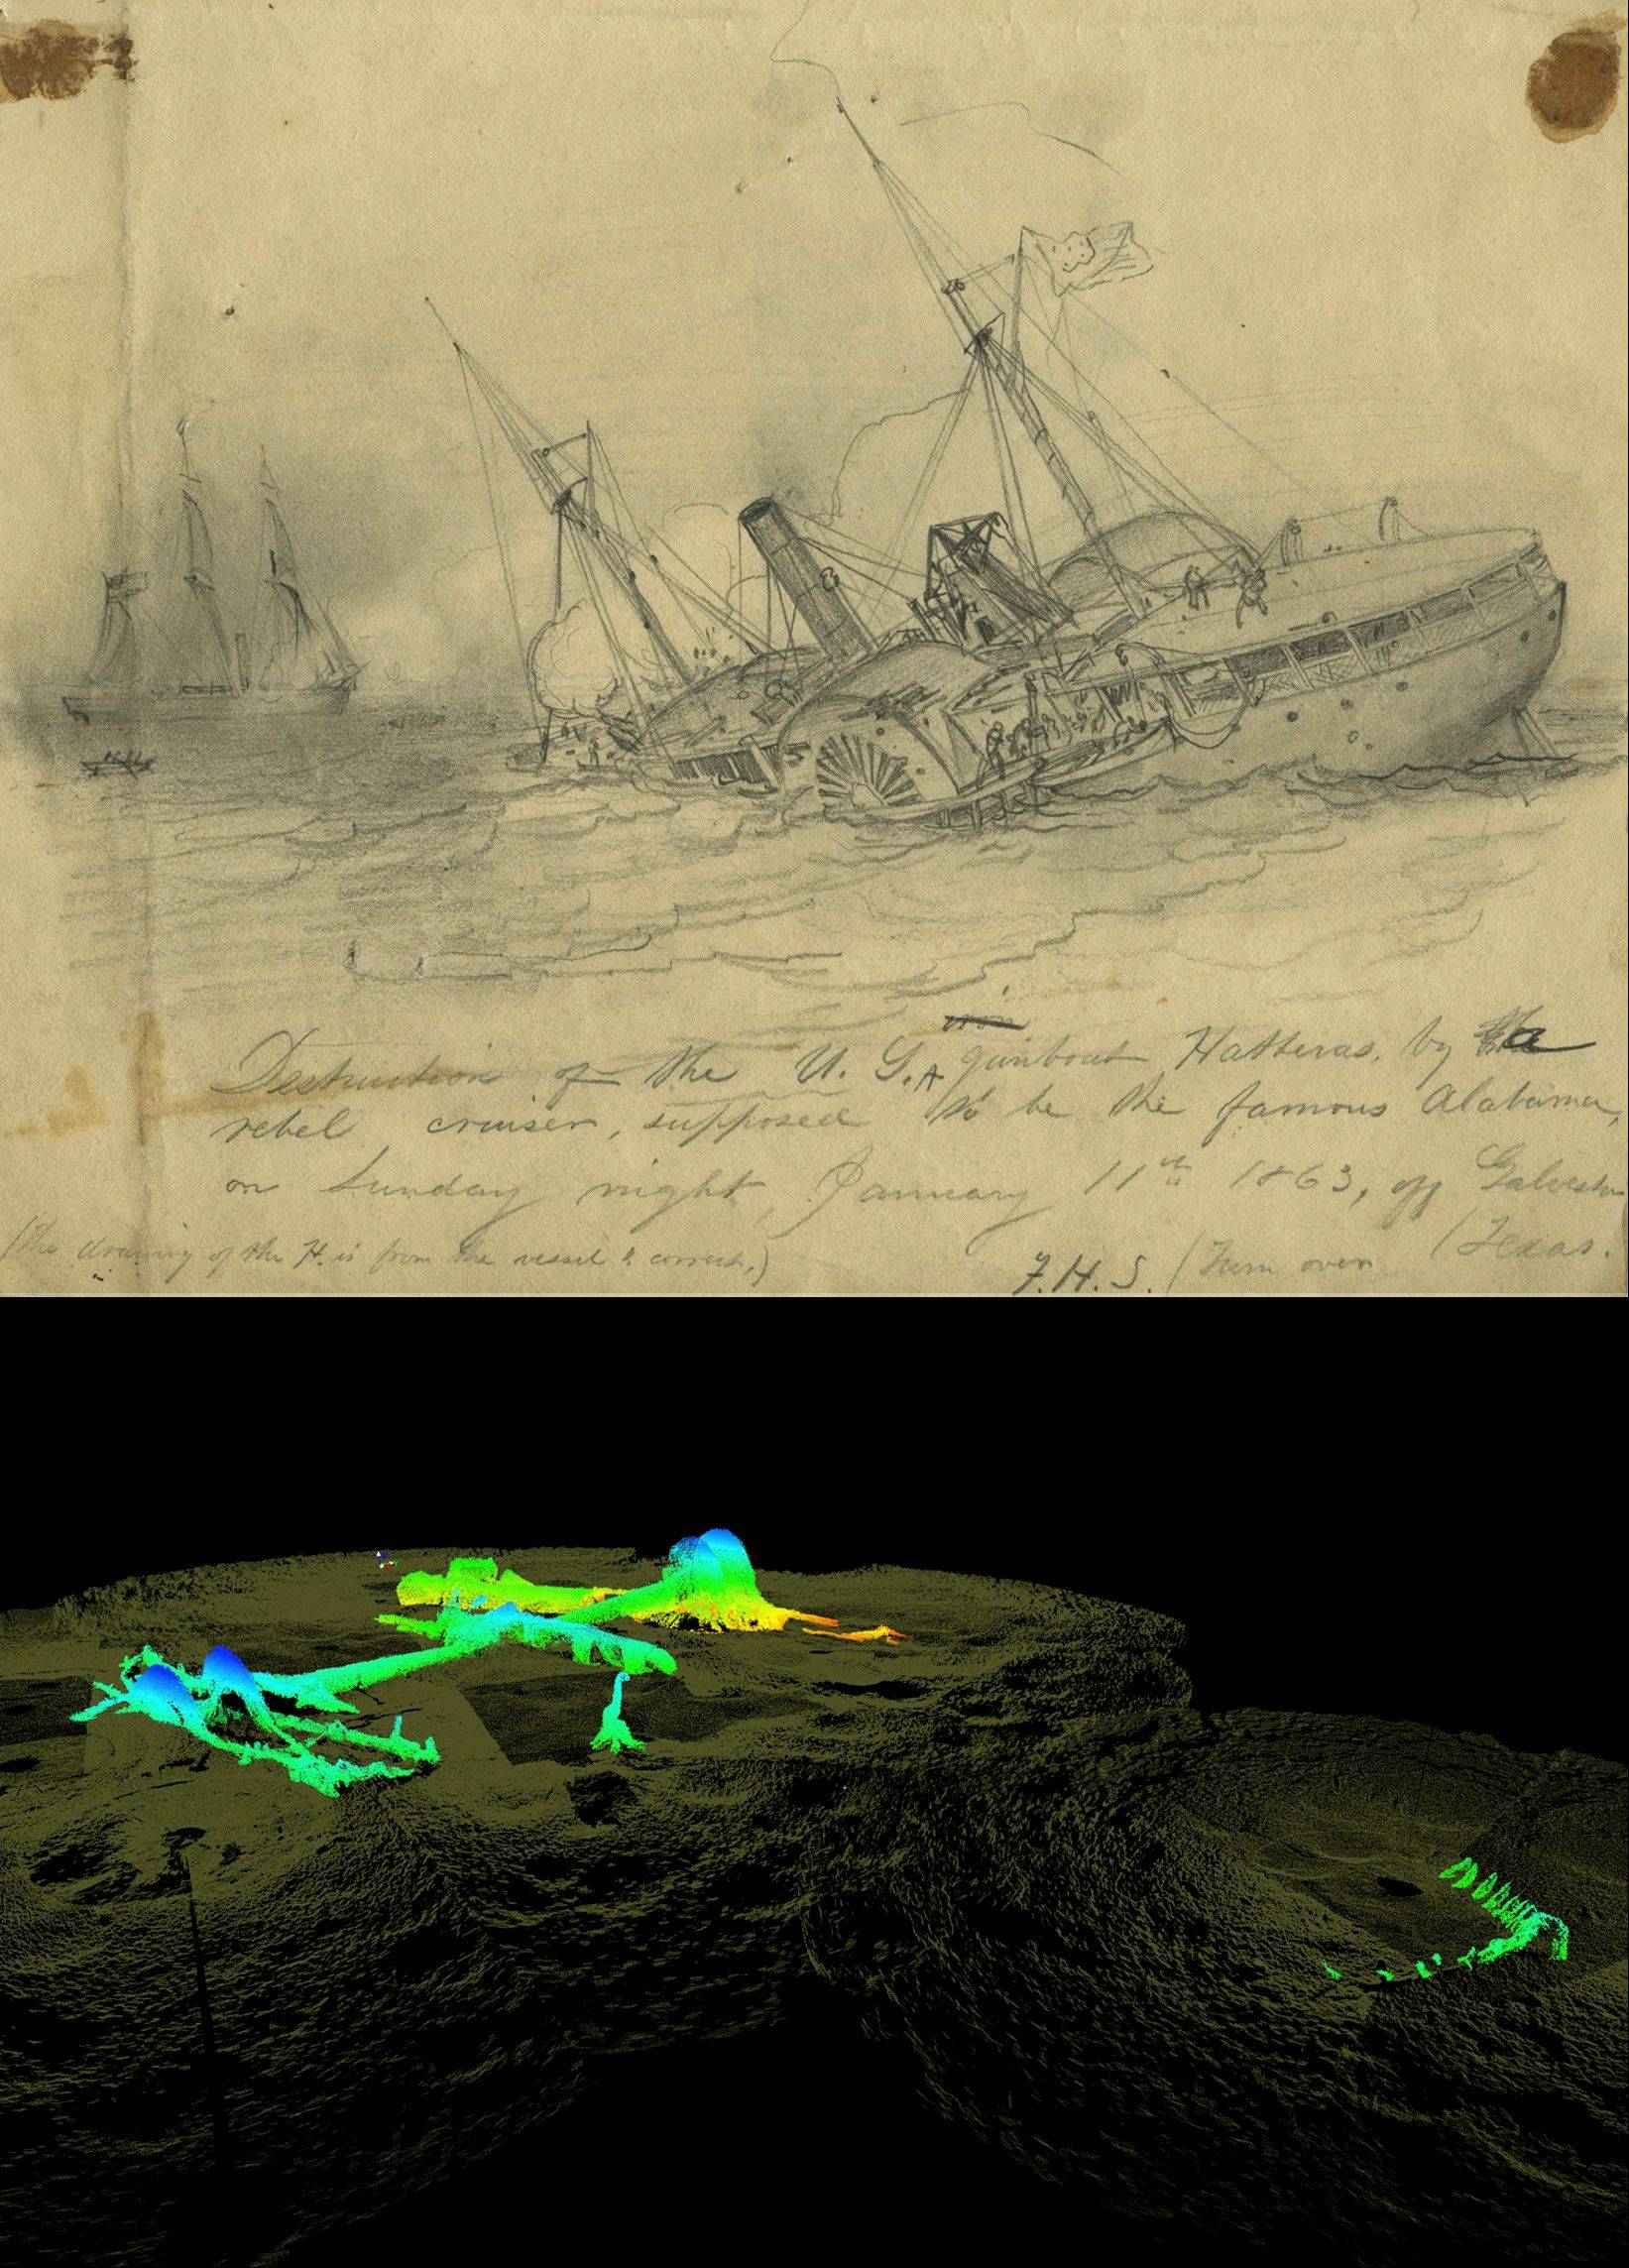 Above is the USS Hatteras as it fought and sank in 1863, depicted in a drawing by Civil War artist Francis H. Schell. Below it, a 2012 high-resolution 3-D sonar image of the wreckage.